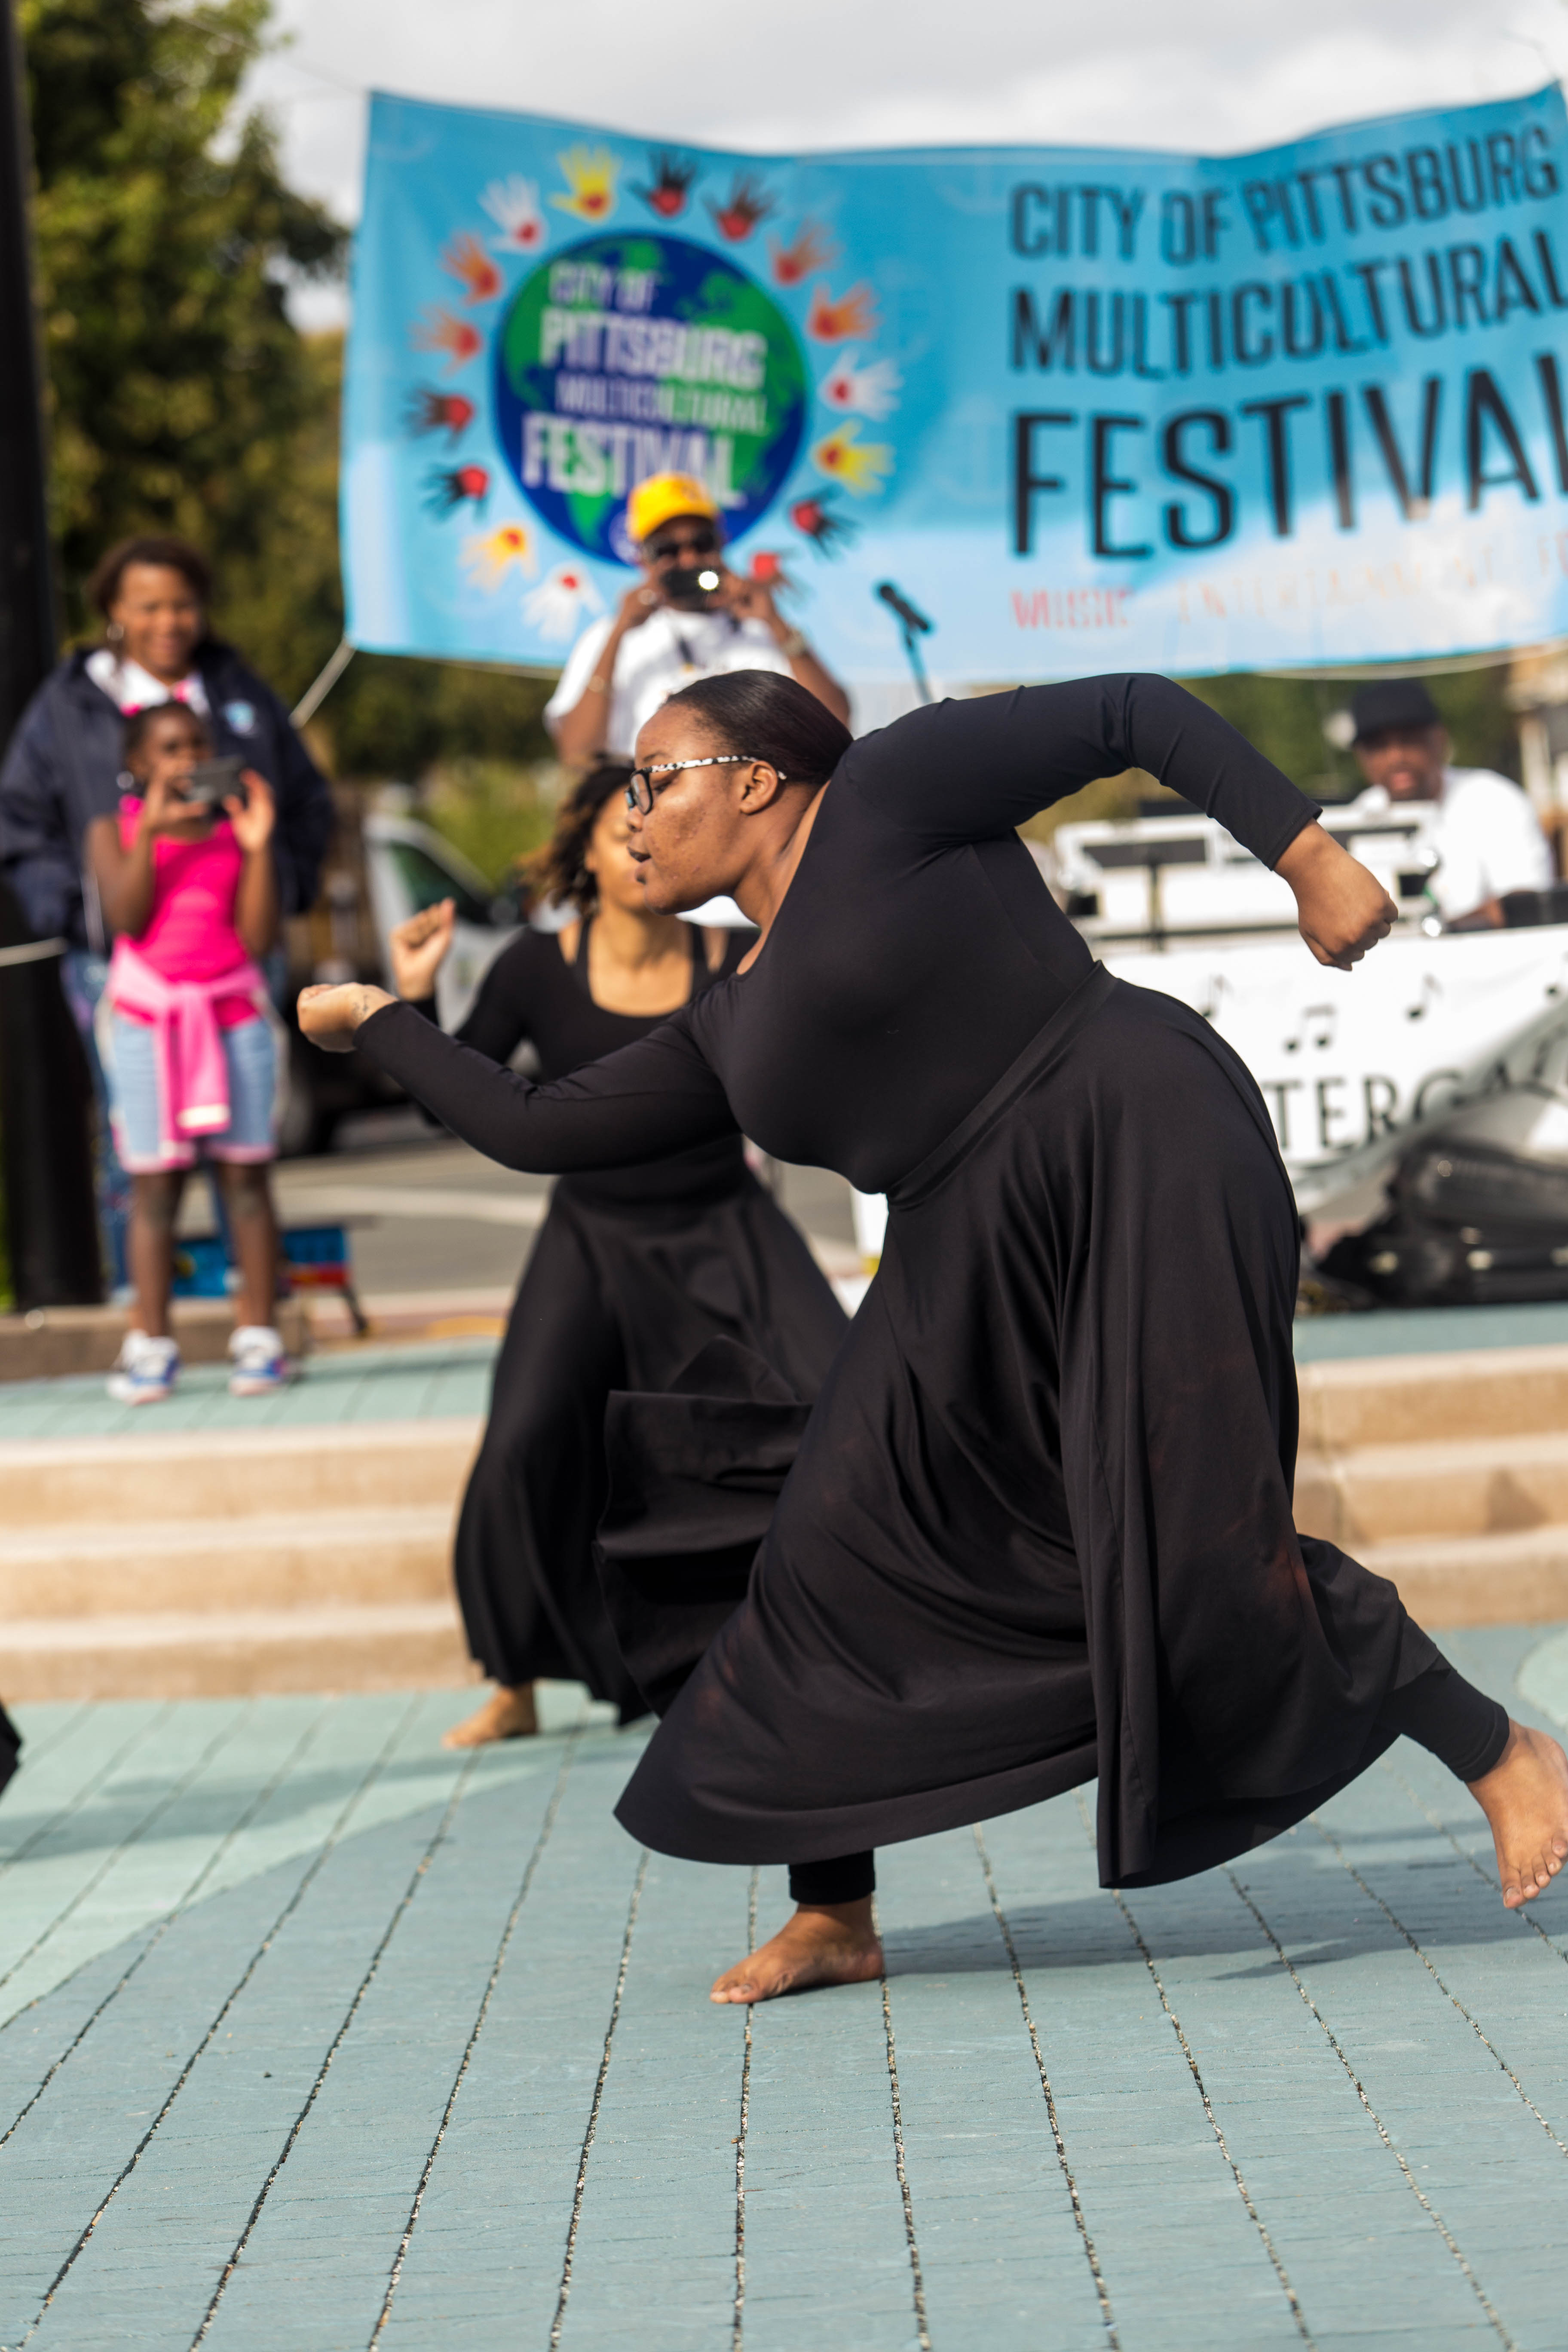 CITY_PITTSBURG_MULTICULTURAL_OCTOBER_2016 (752)